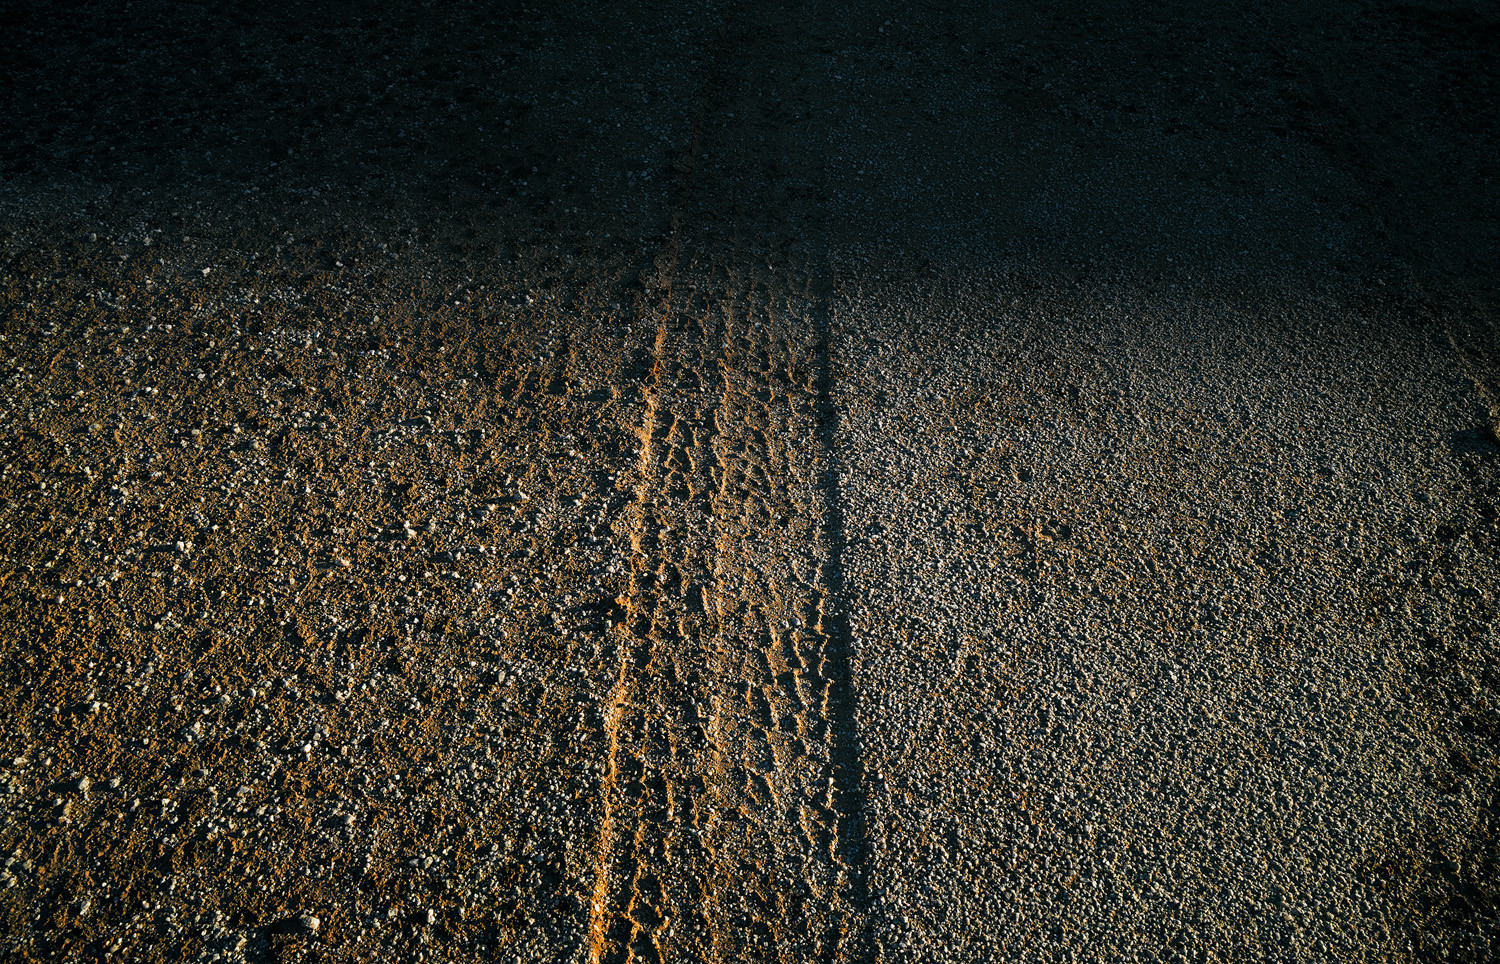 Mark Klett, Tire track on virgin desert, 2013